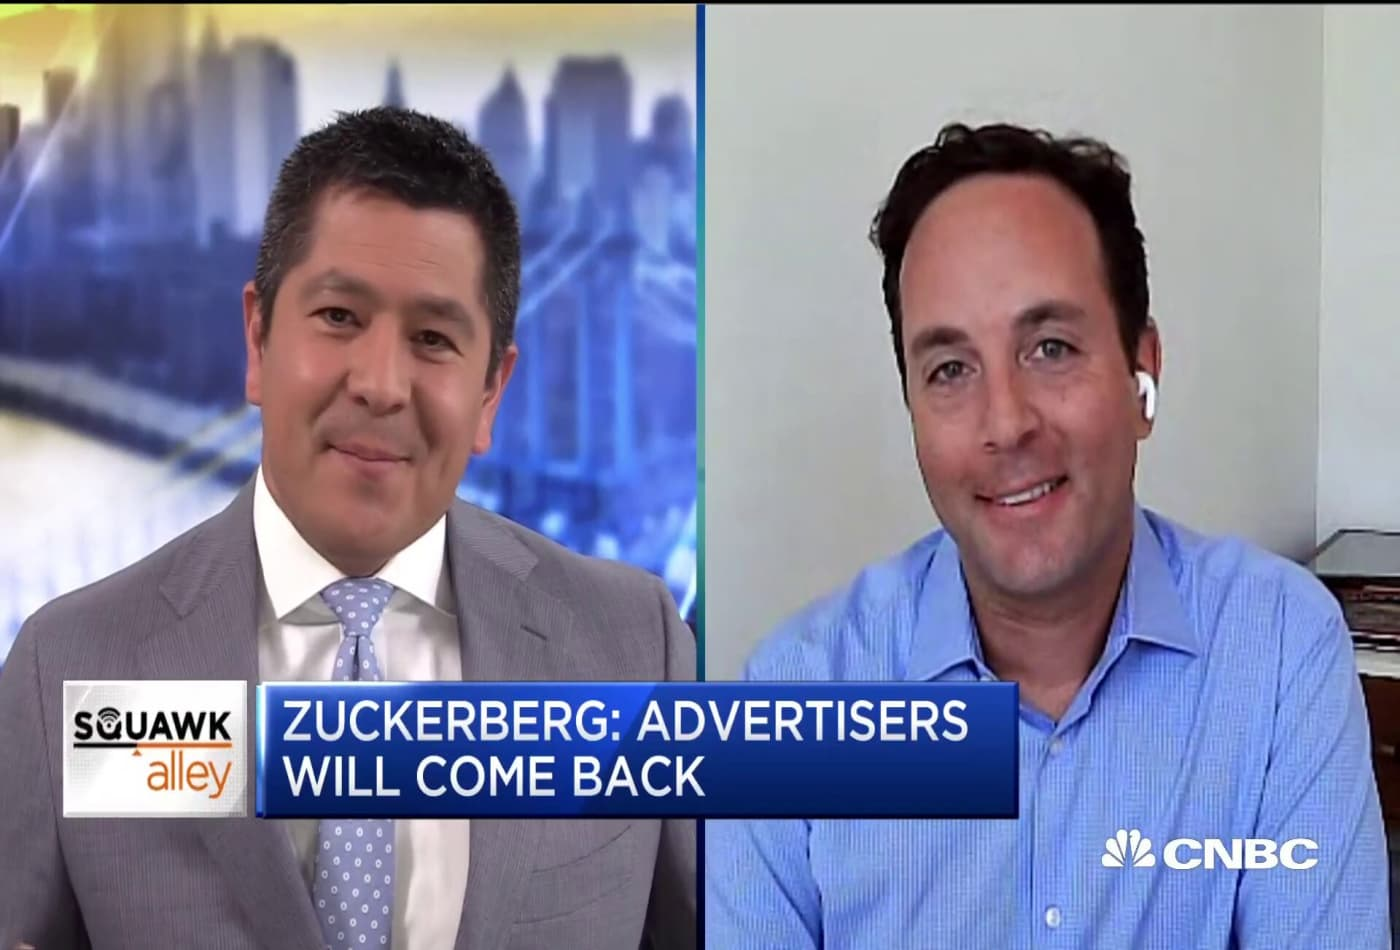 Zillow co-founder Spencer Rascoff on Facebook ad boycott, social media moderation